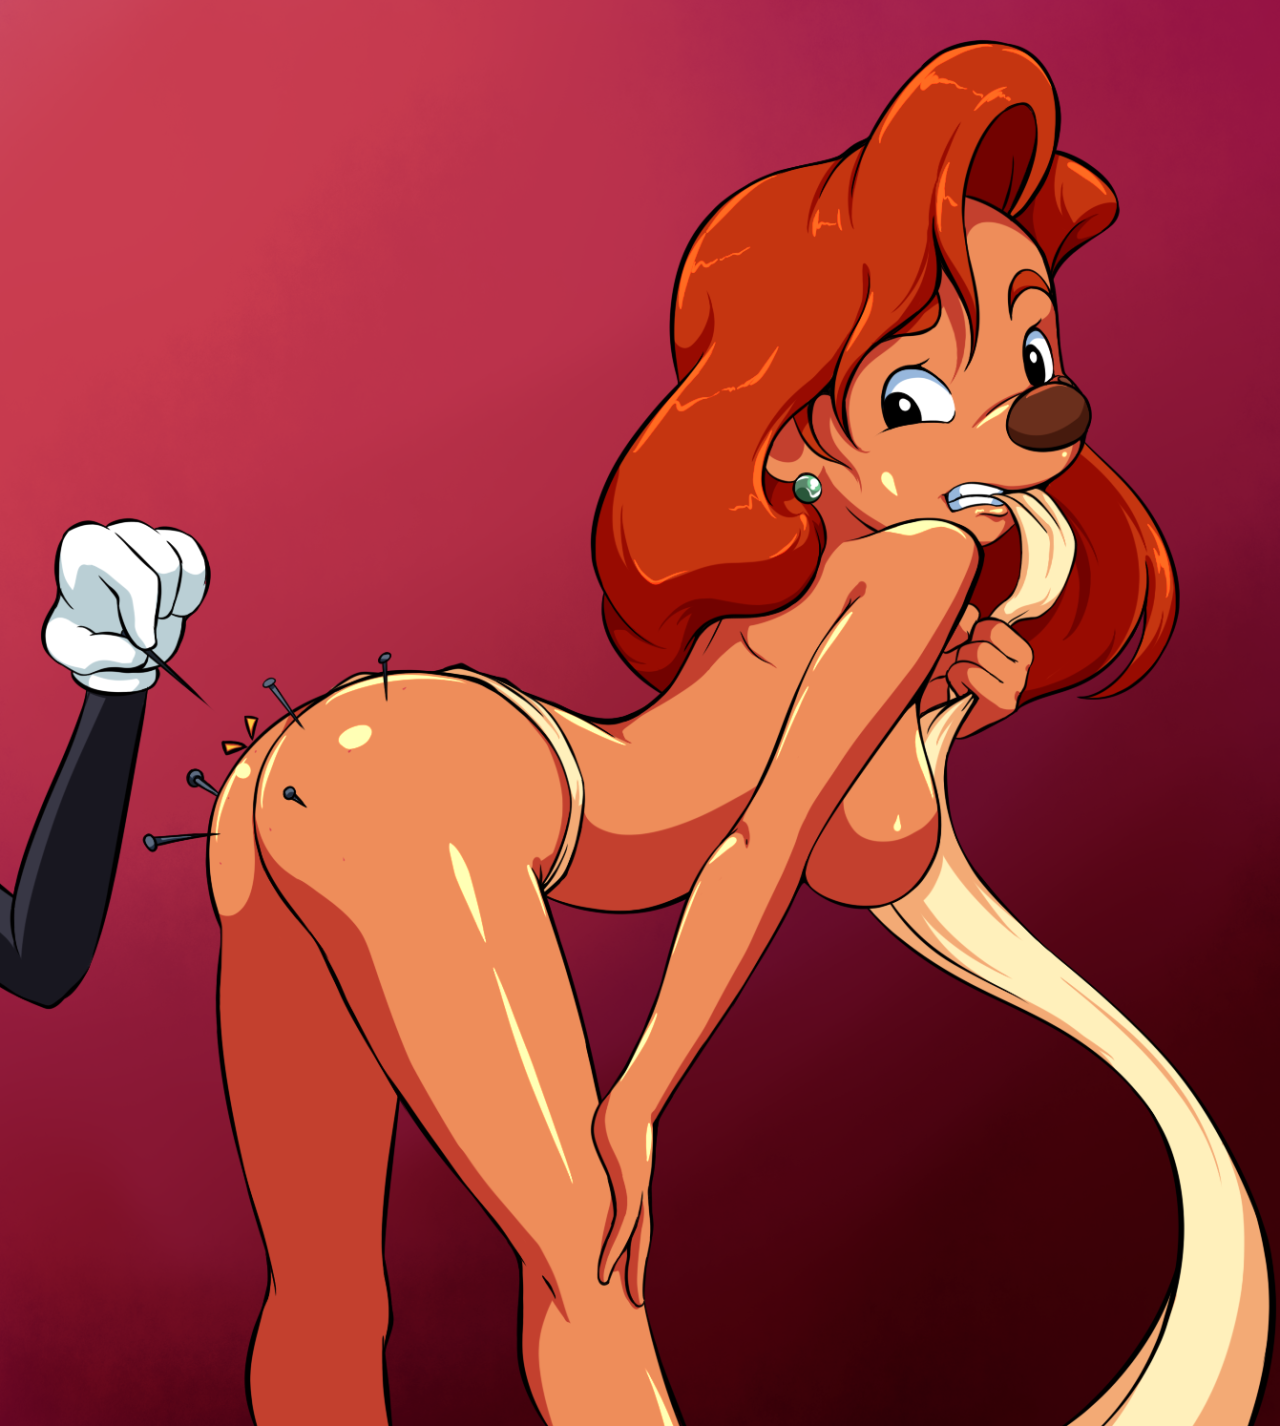 A Goofy Movie Roxanne Porn the big imageboard (tbib) - anthro bent over big breasts